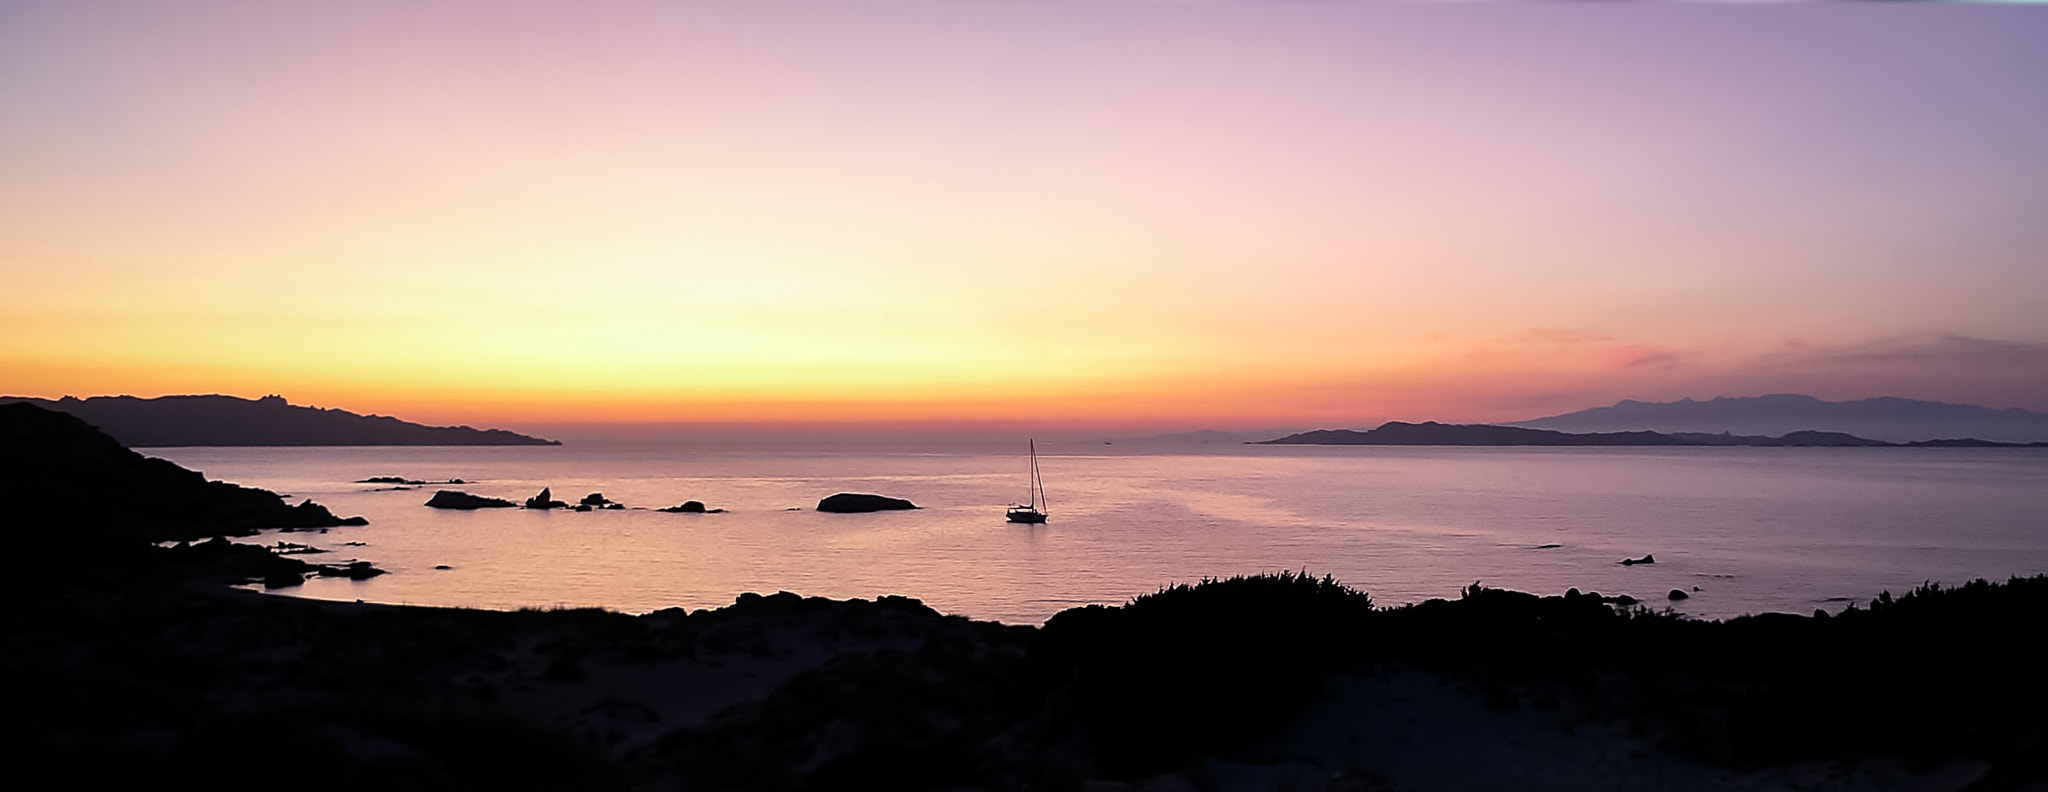 Photograph Sunset in Sardinia by Emanuel Aguilera on 500px